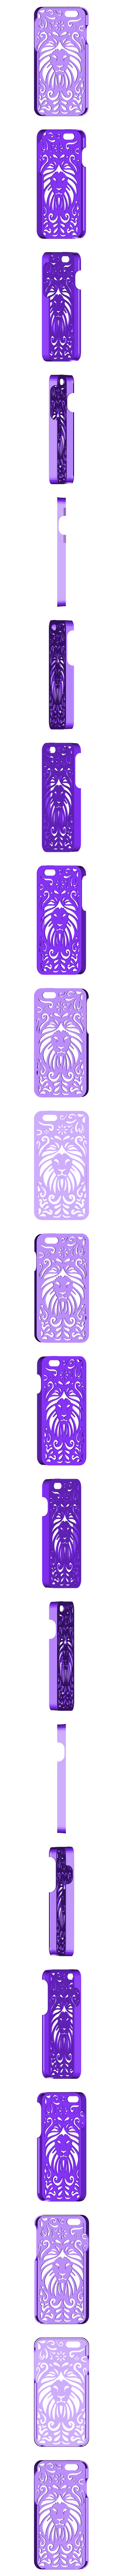 Lion Floral Iphone Case 6 V2.stl Download STL file Tribal Lion Floral Iphone Case 6 6s • 3D printing model, Custom3DPrinting